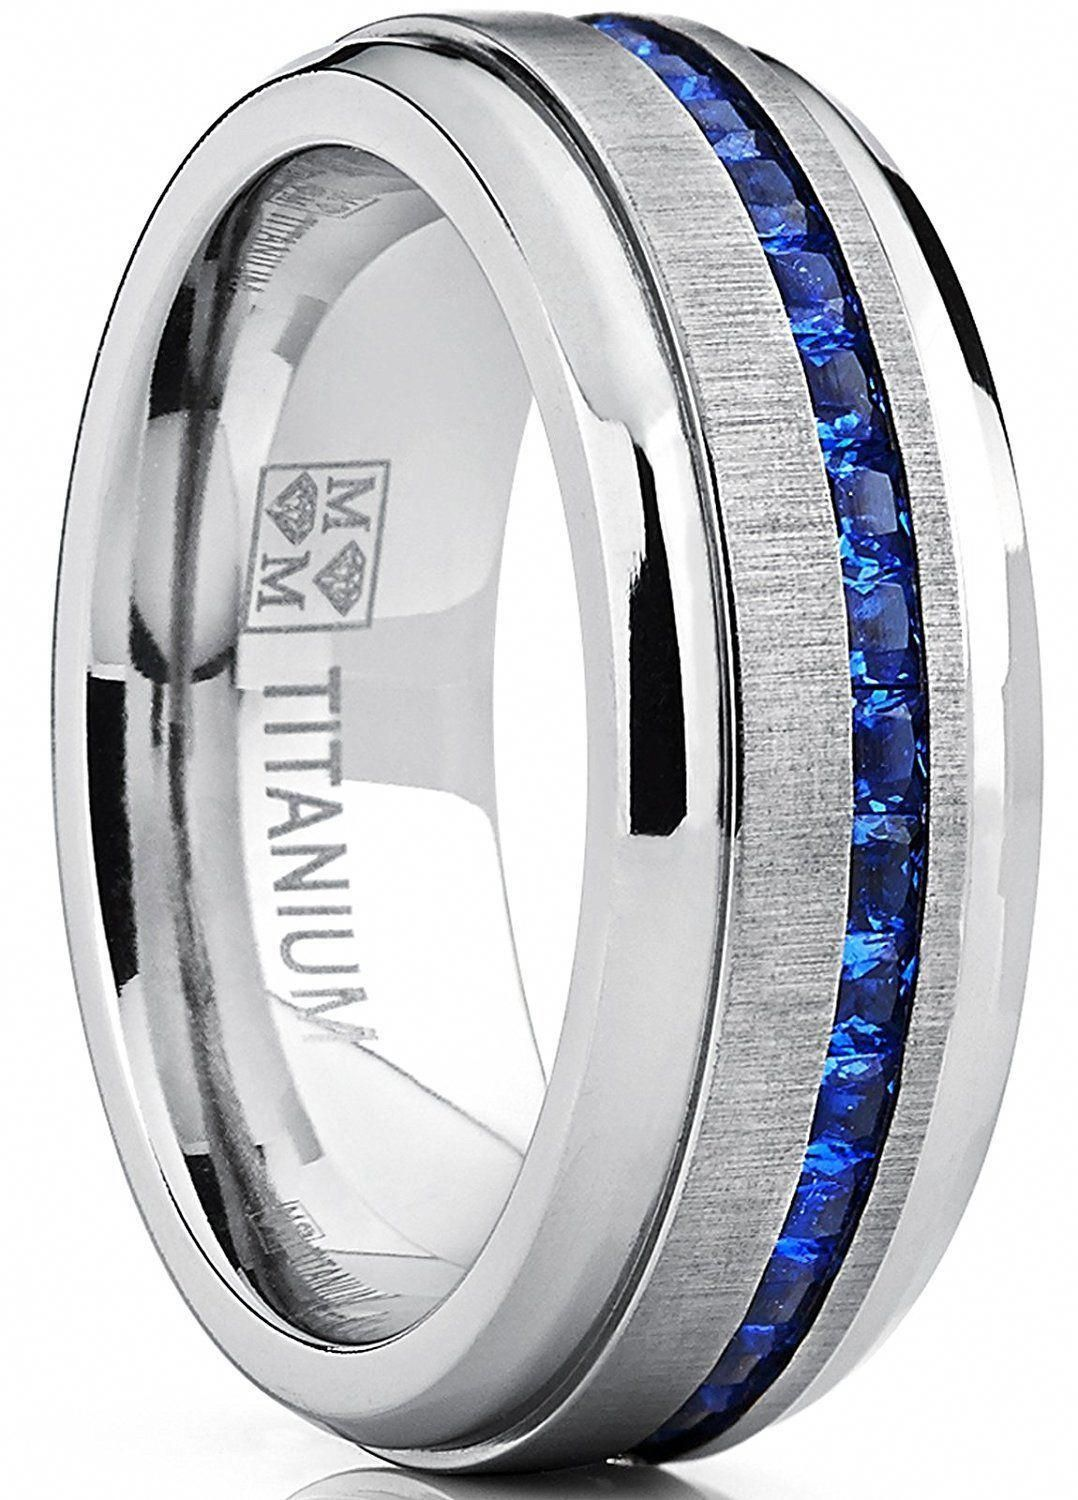 Discount Engagement rings which are stunning!